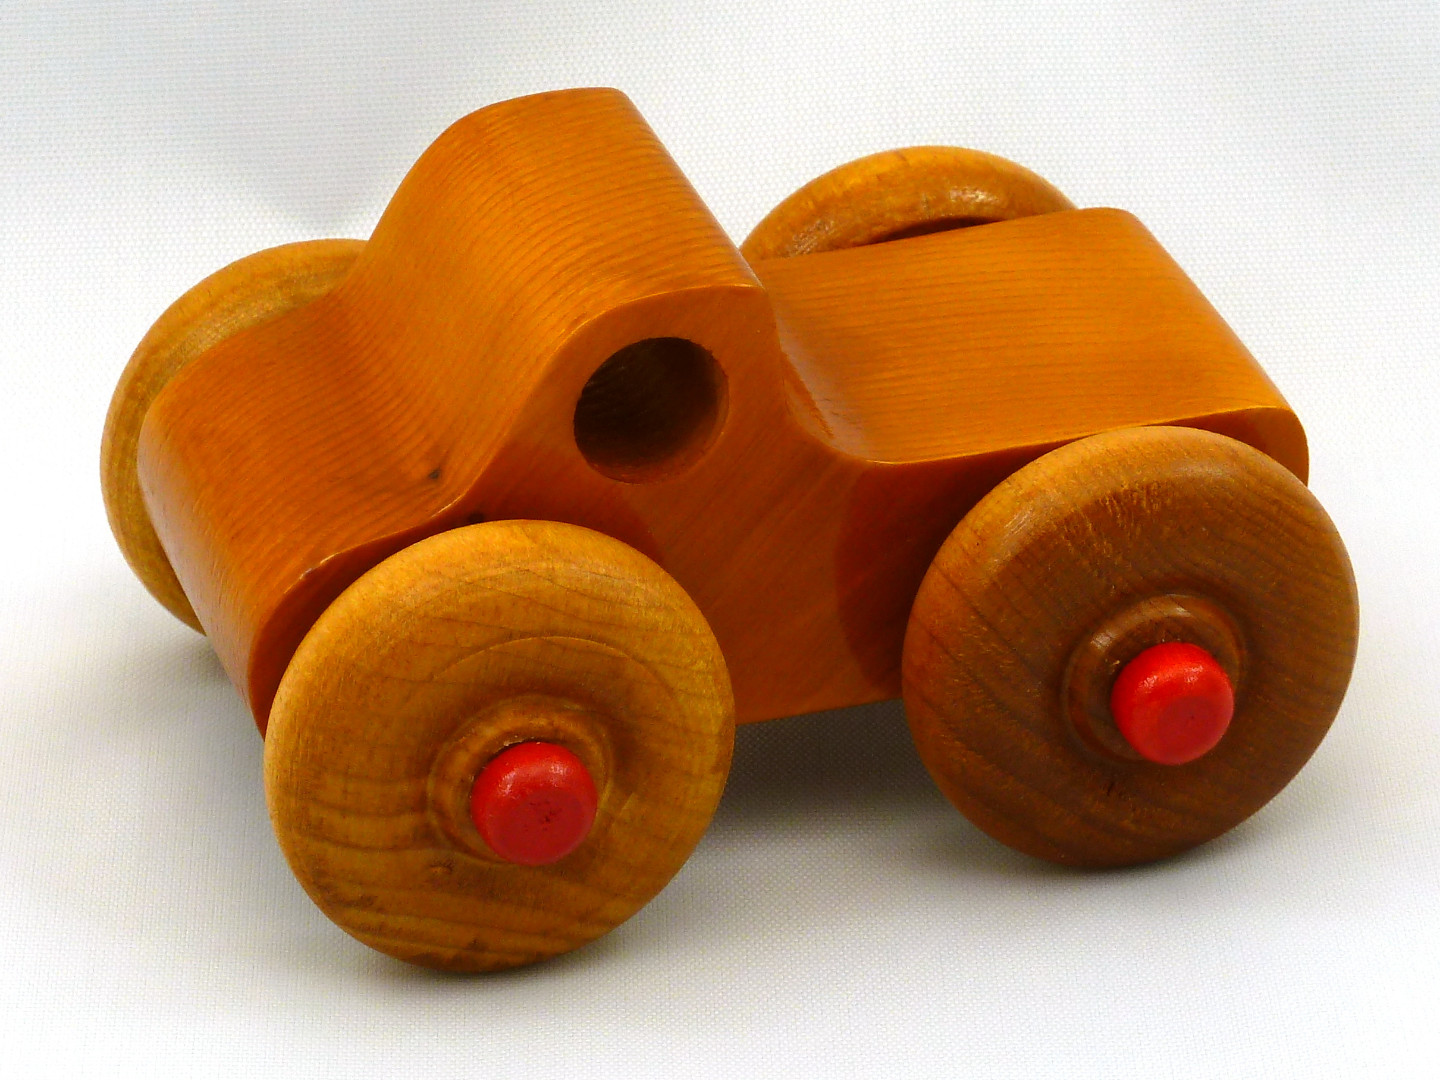 20170108-123224 Wooden Toy Truck - Monster Truck - Reclaimed - Toy Truck - Wooden Truck - Toys - Pickup - Hardwood - Handmade - Handcrafted - Wood Truck - Made In USA.jpg